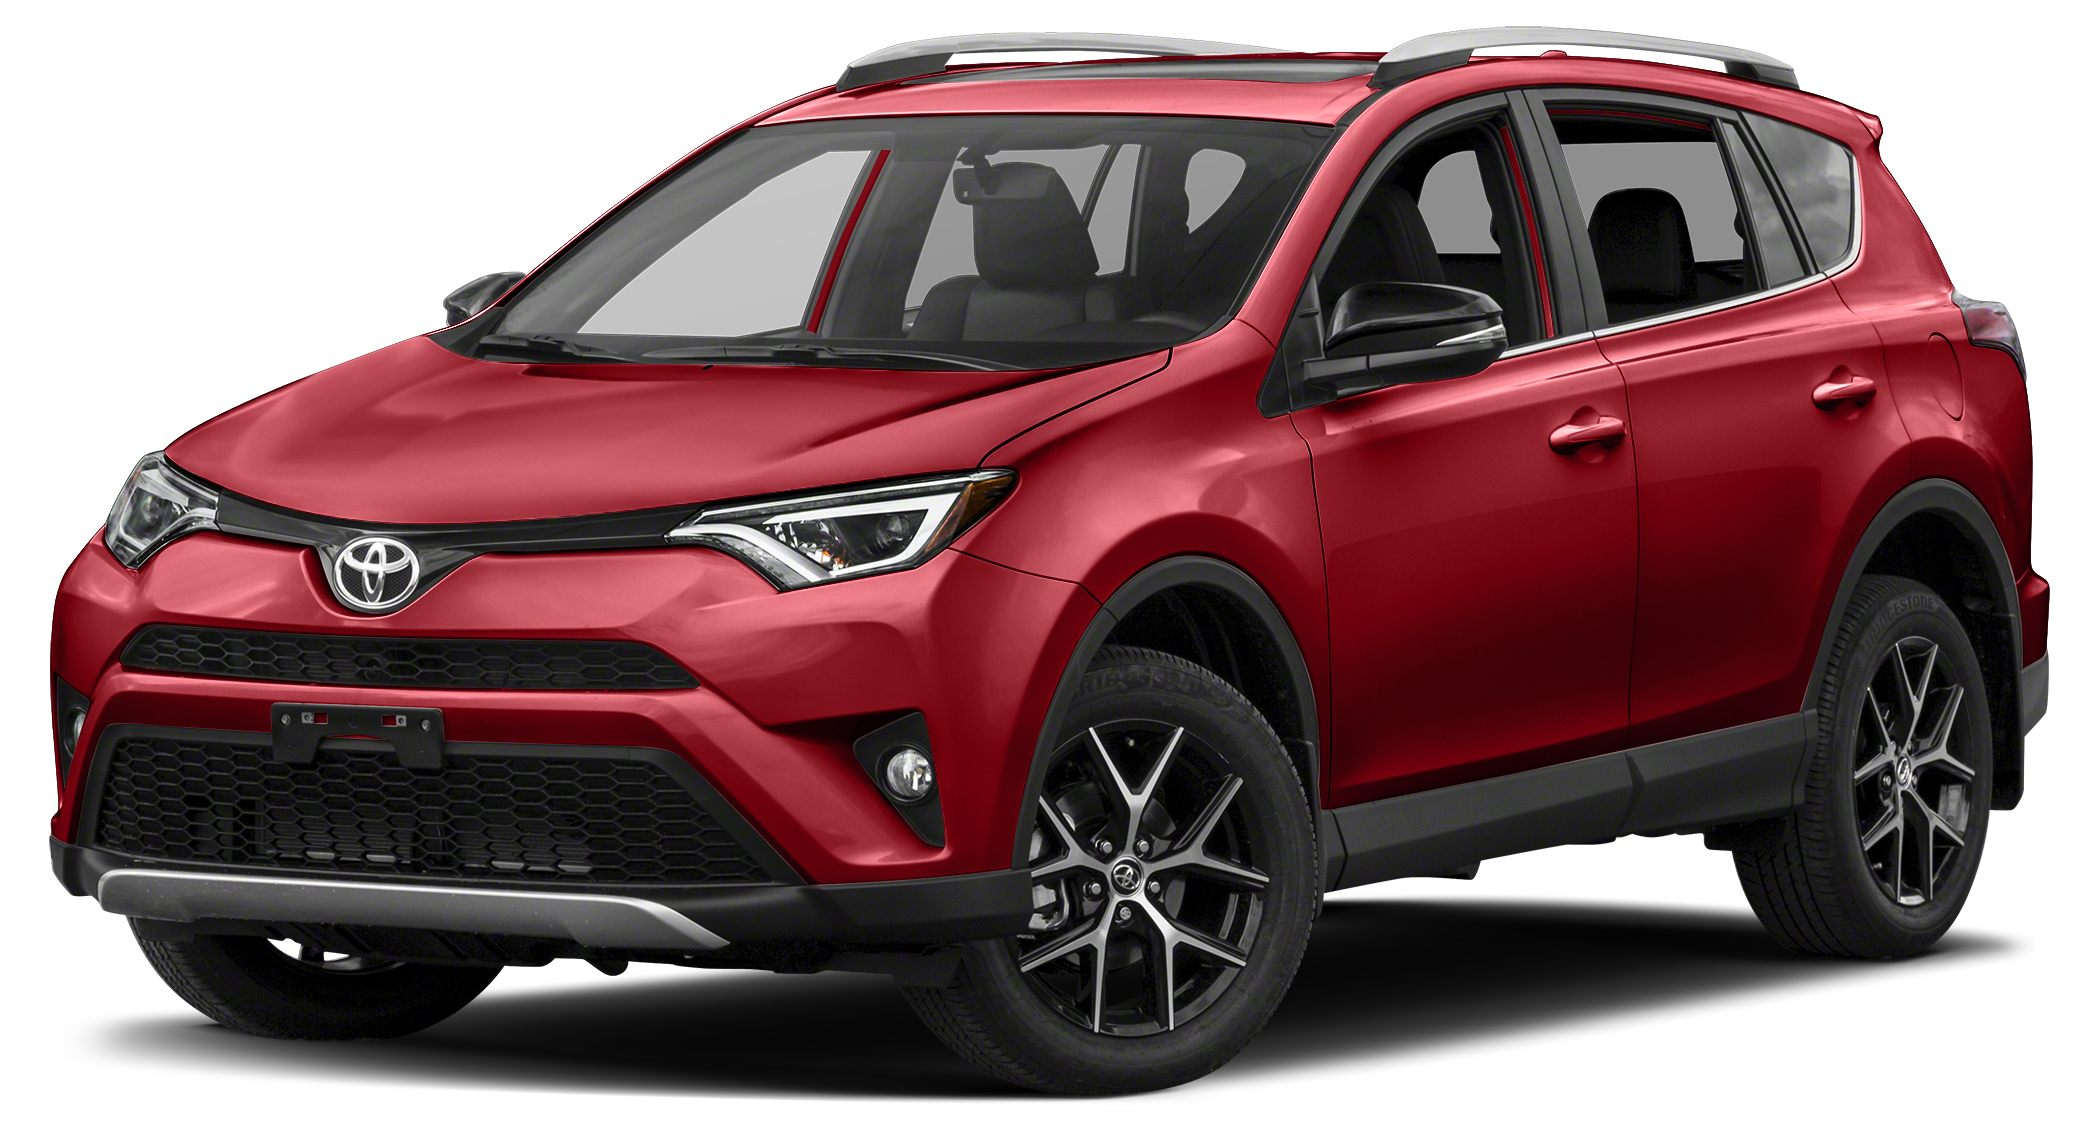 2016 Toyota RAV4 SE CARFAX 1-Owner WAS 234985 FUEL EFFICIENT 29 MPG Hwy22 MPG City Heated Se